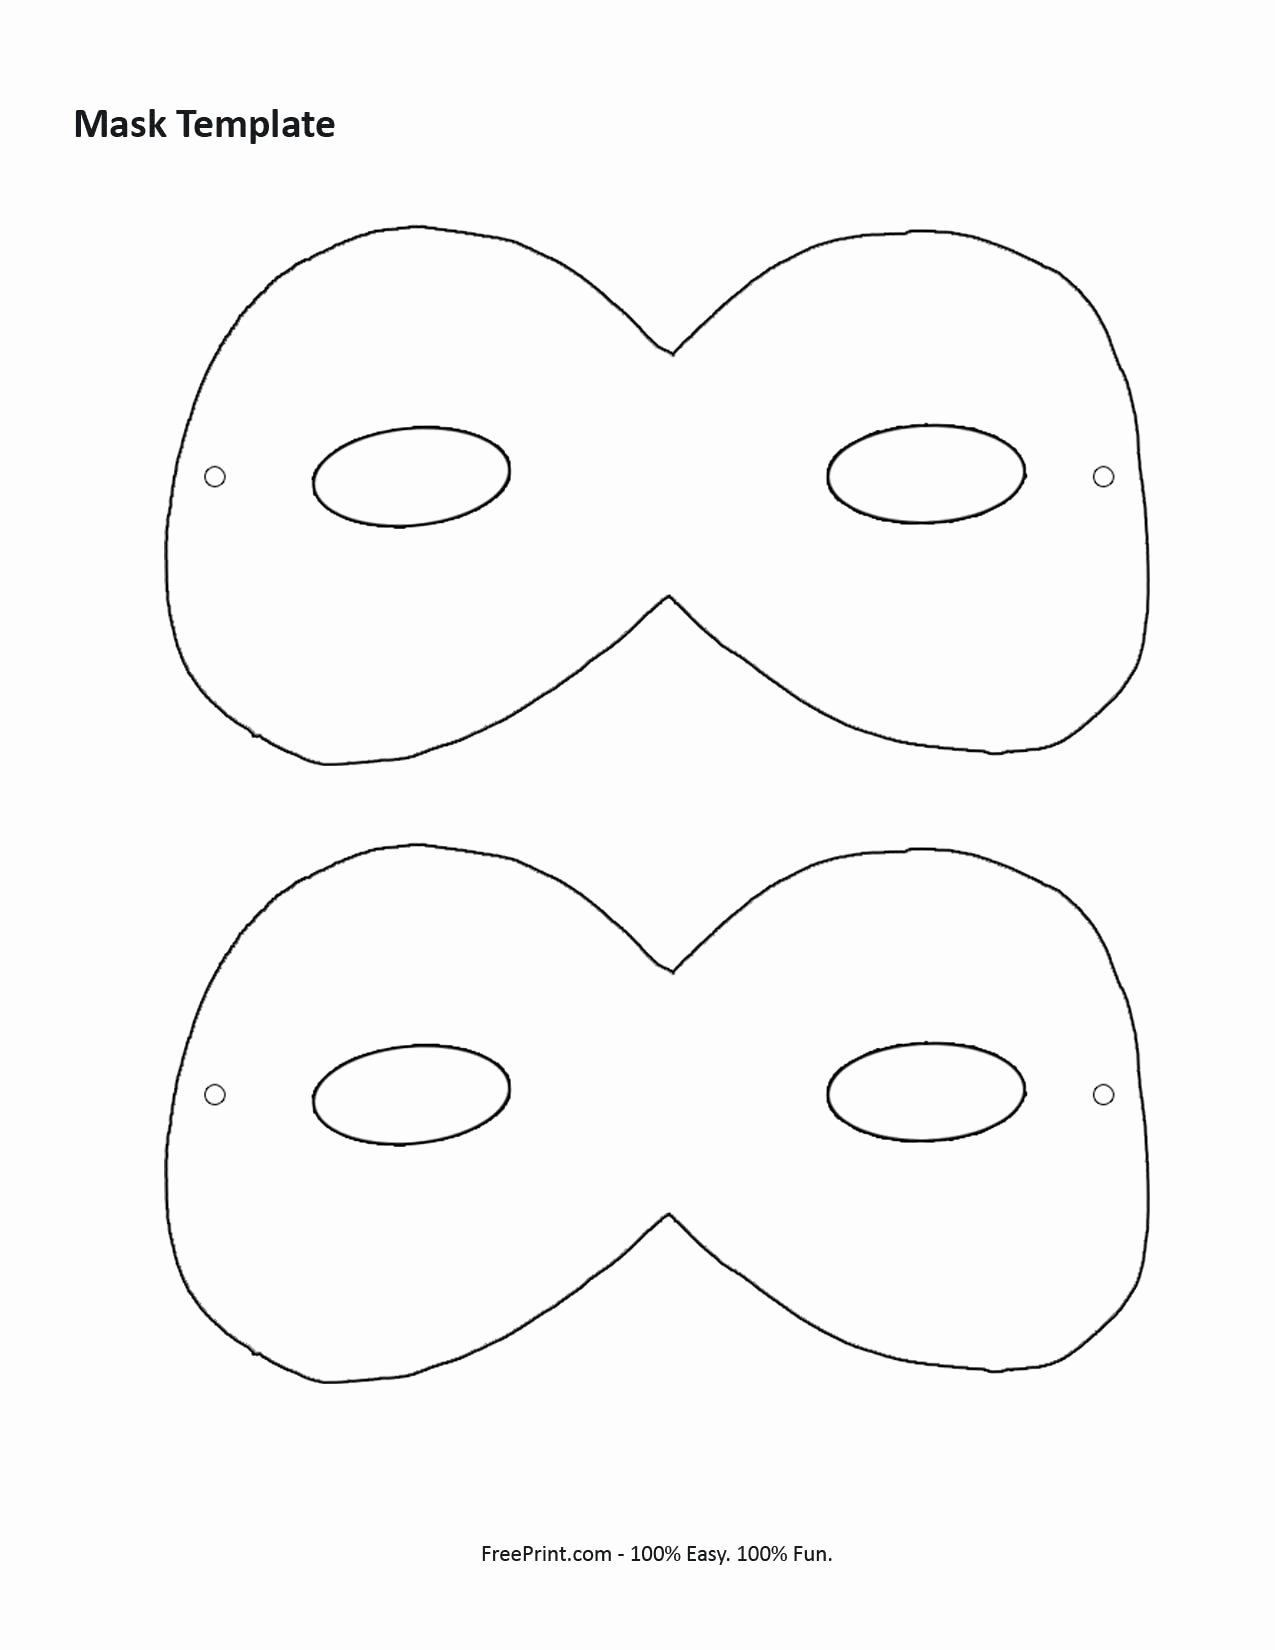 Masquerade Mask Template Printable Fresh 10 Best Of Printable Masquerade Masks Free